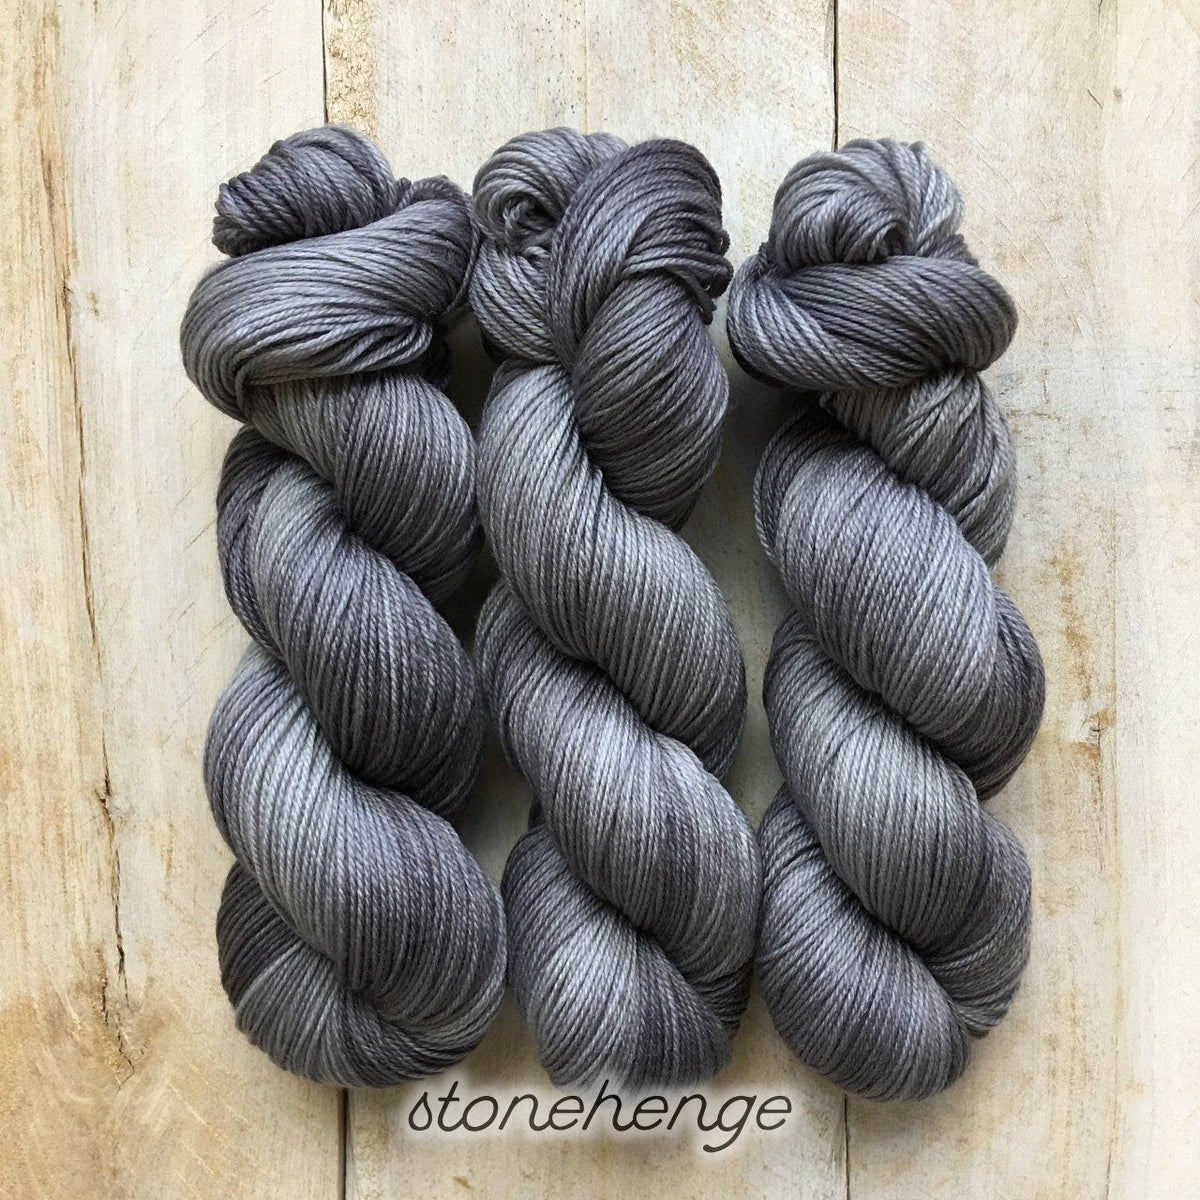 STONEHENGE by Louise Robert Design | SUPER SOCK hand-dyed semi-solid yarn